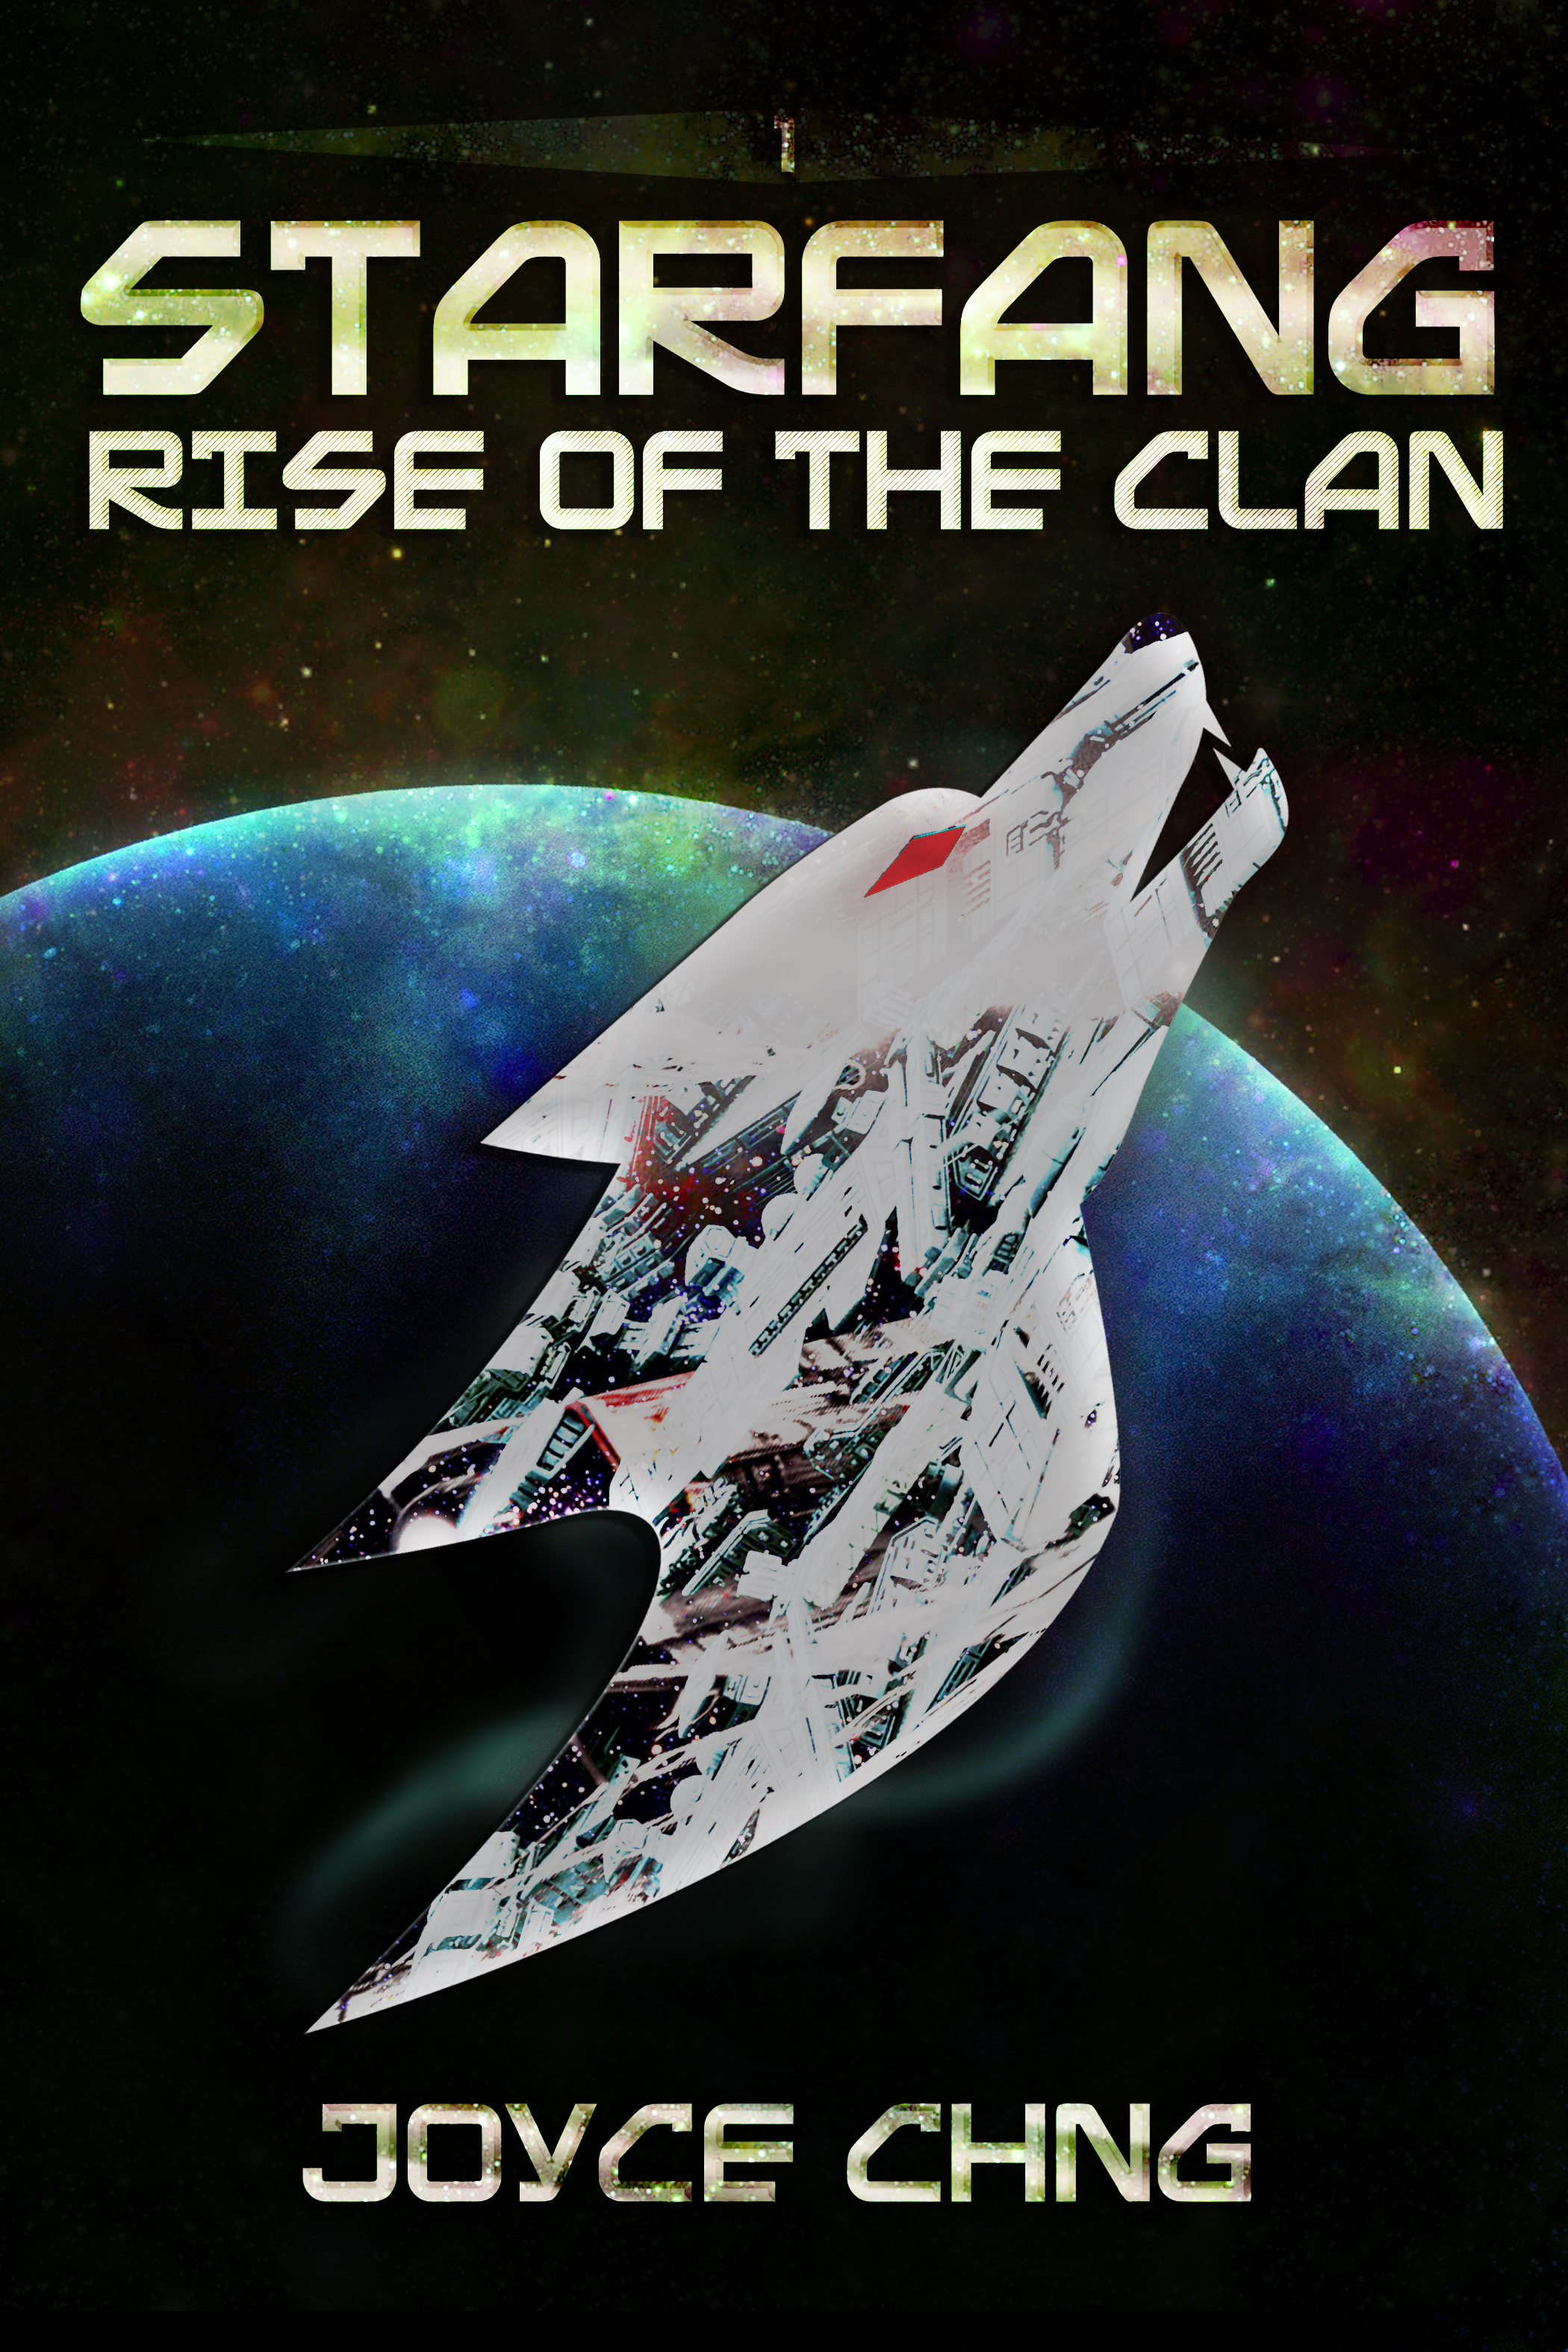 Starfang Rise of the Clan by Joyce Chng